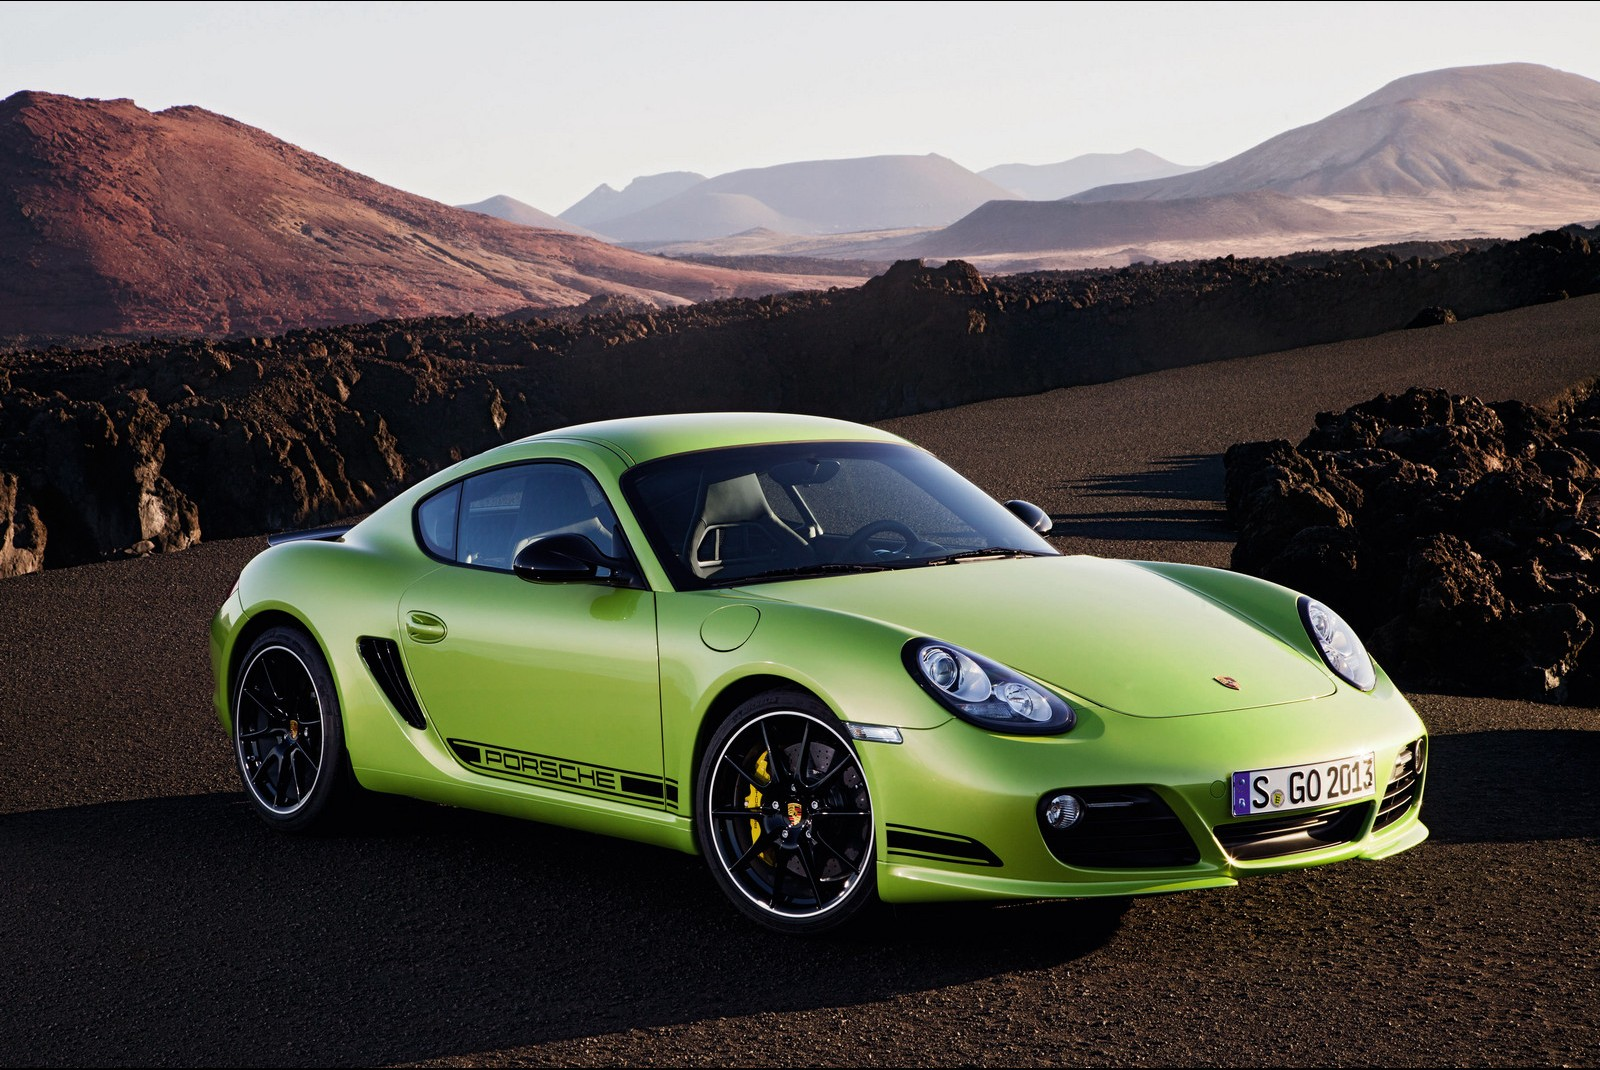 3d Name Wallpapers R Porsche Cayman R Green Hd Hd Desktop Wallpapers 4k Hd